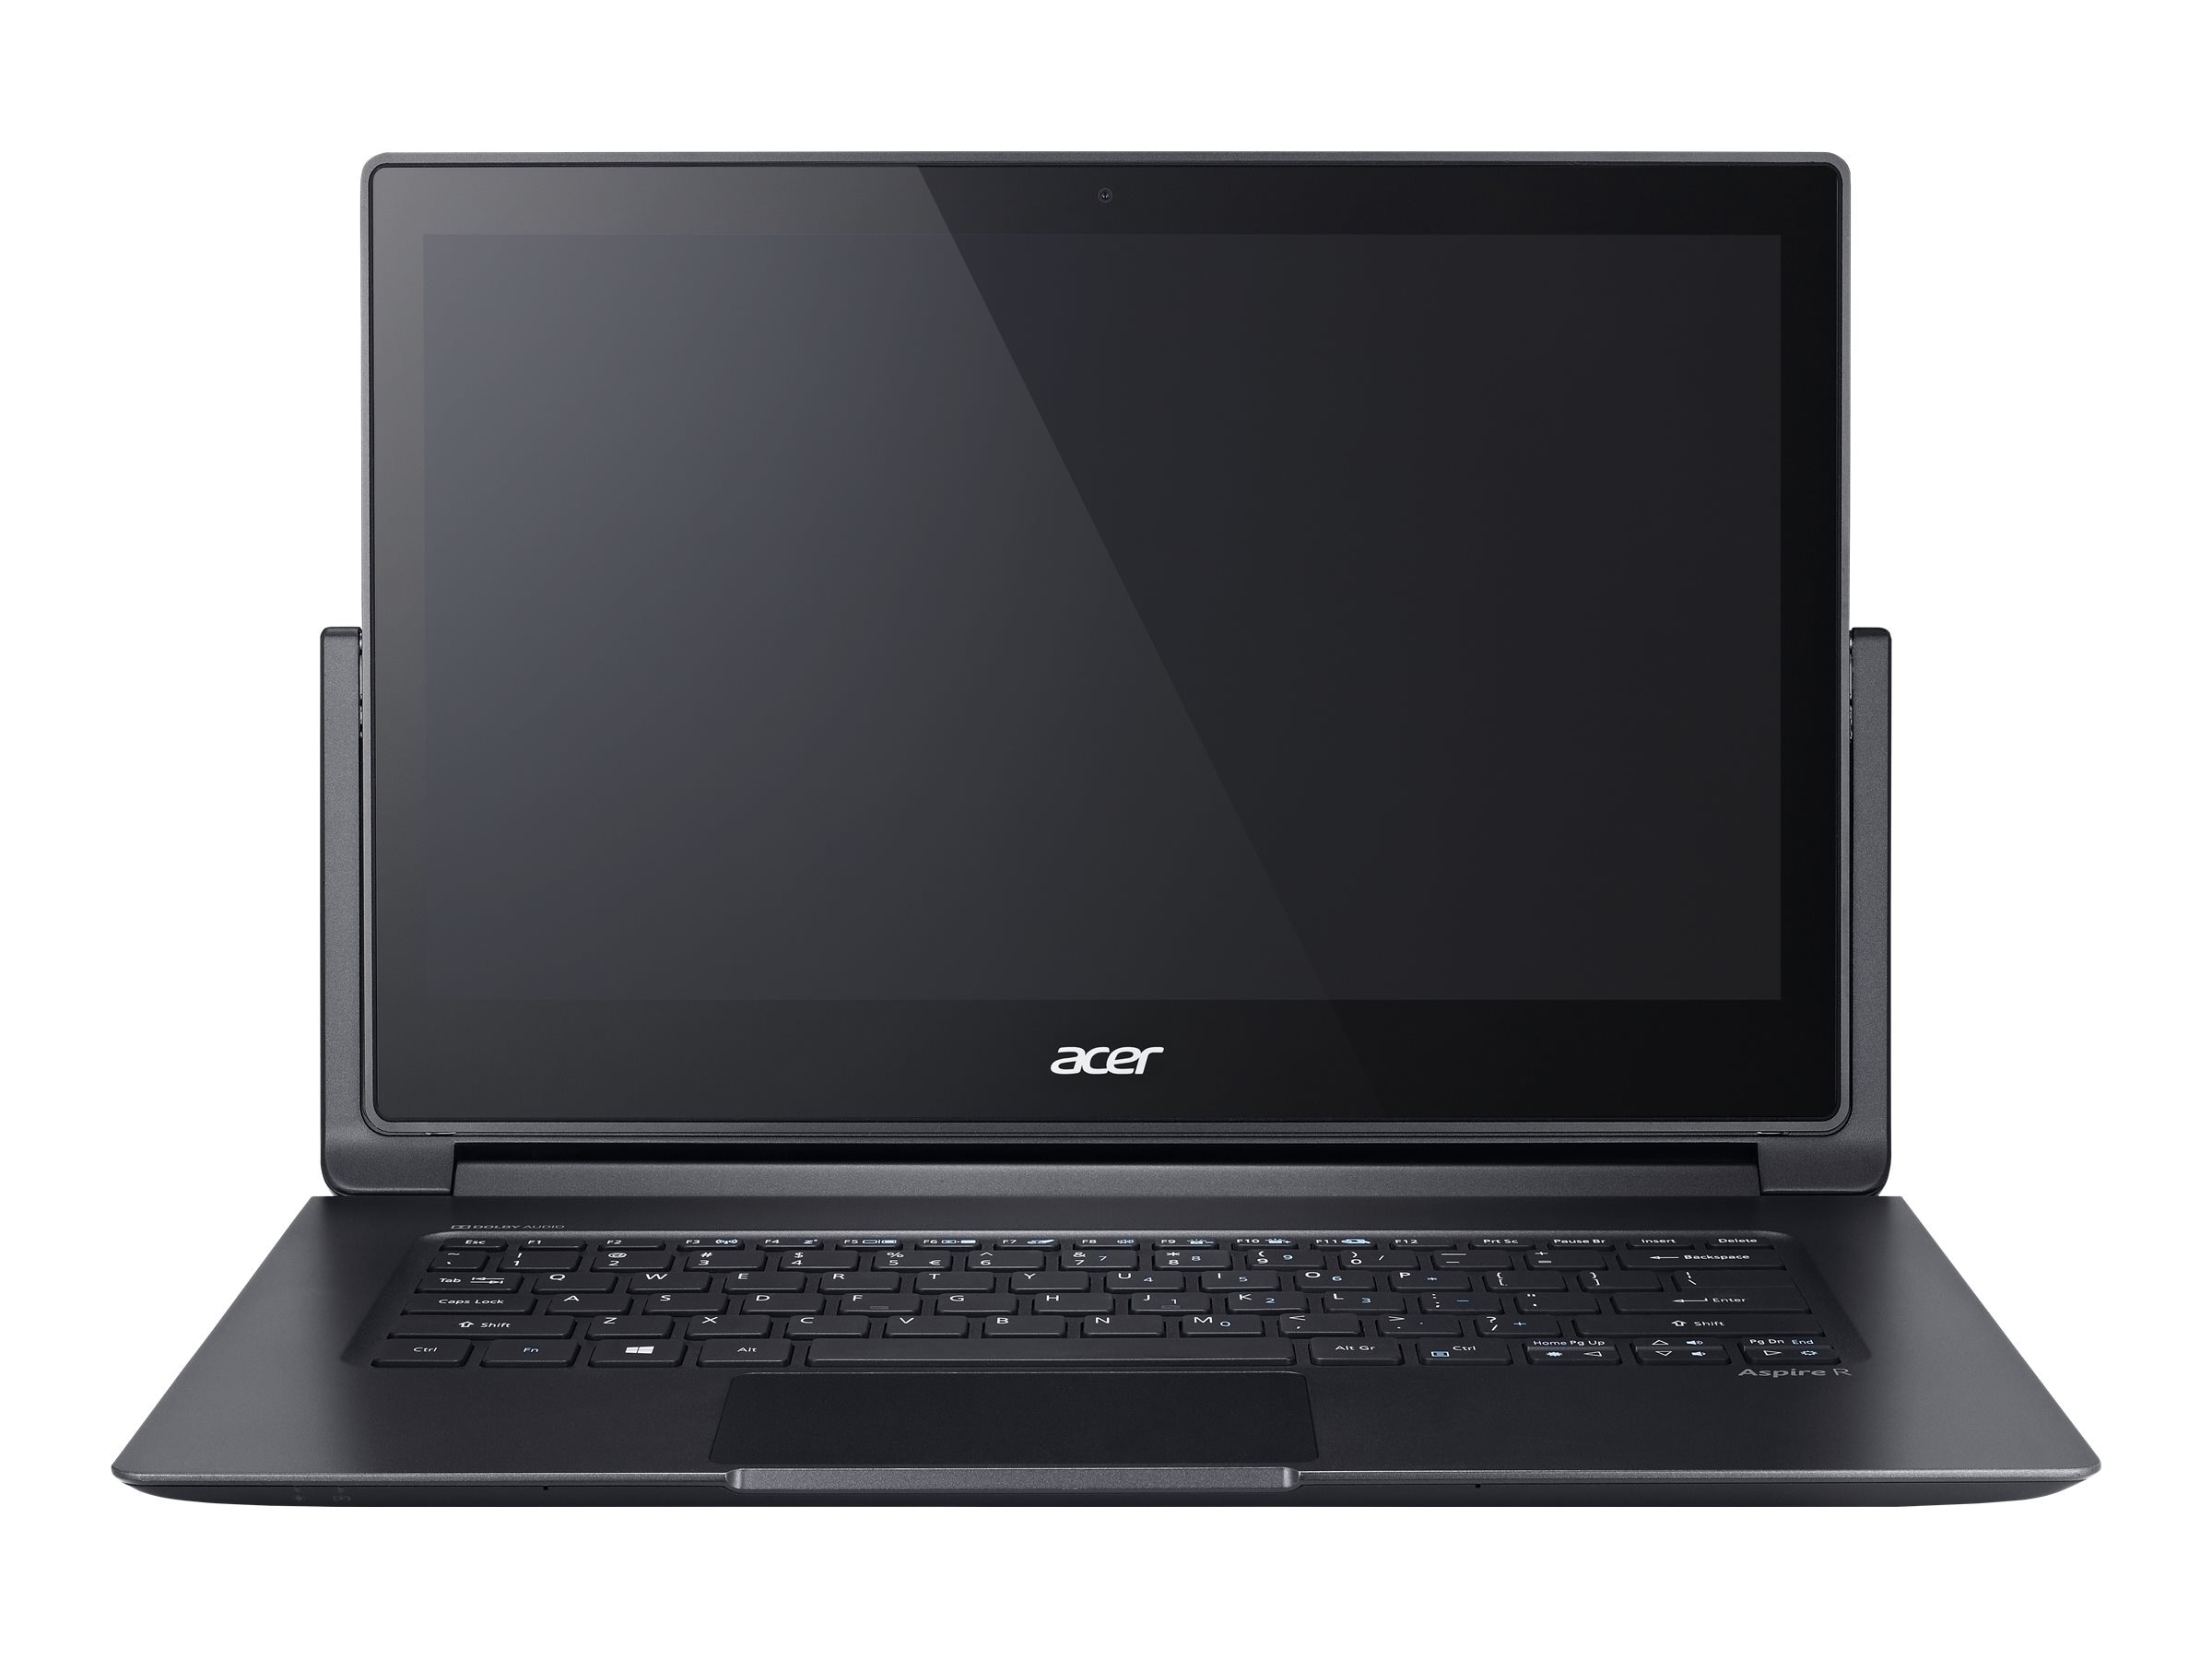 Acer Aspire R7-372T-50BG 2.3GHz processor Windows 10 Pro 64-bit Edition, NX.G8SAA.004